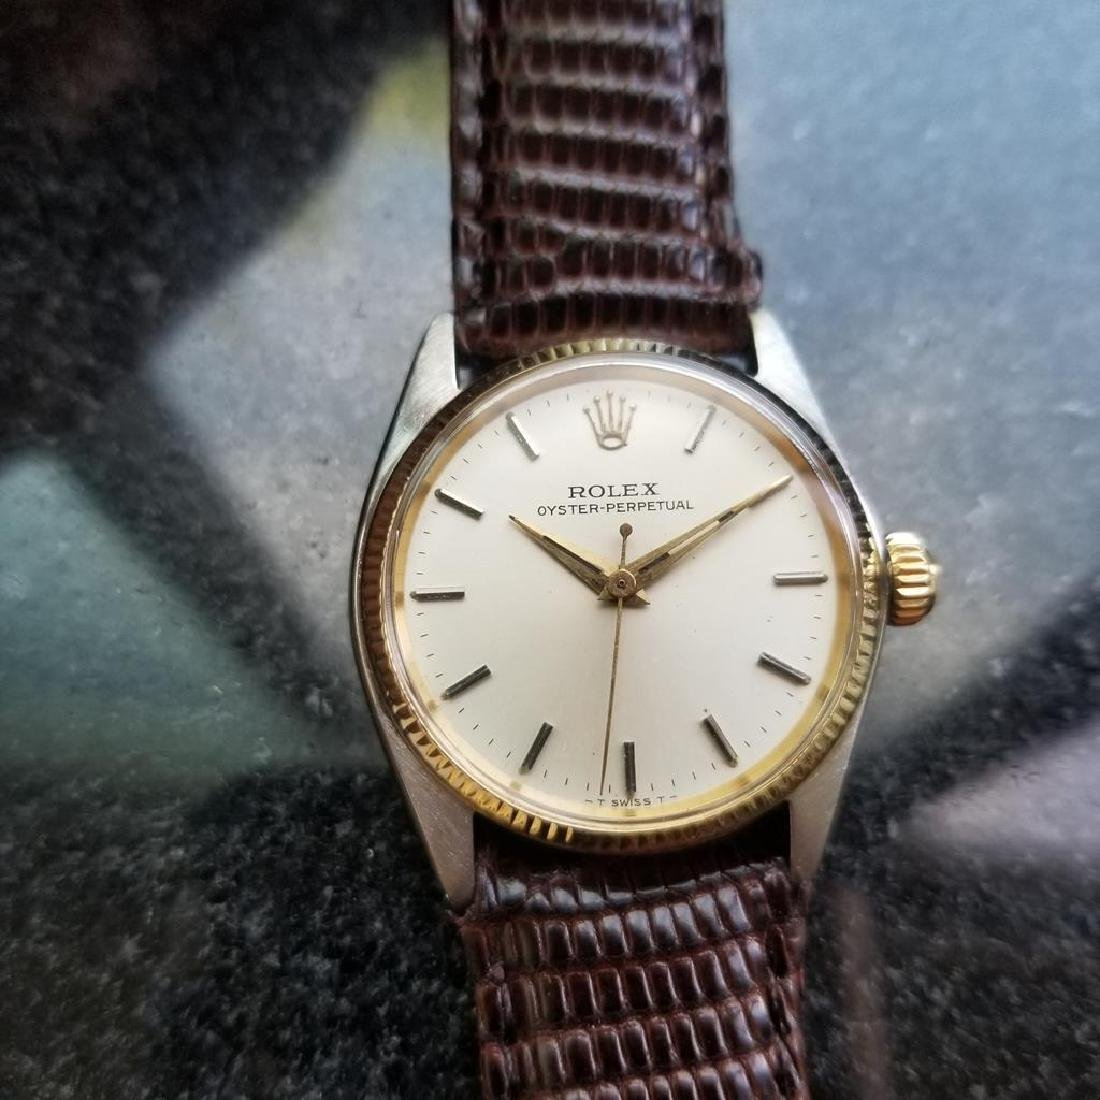 ROLEX Oyster Perpetual ref. 6551 31mm automatic 14k - 3